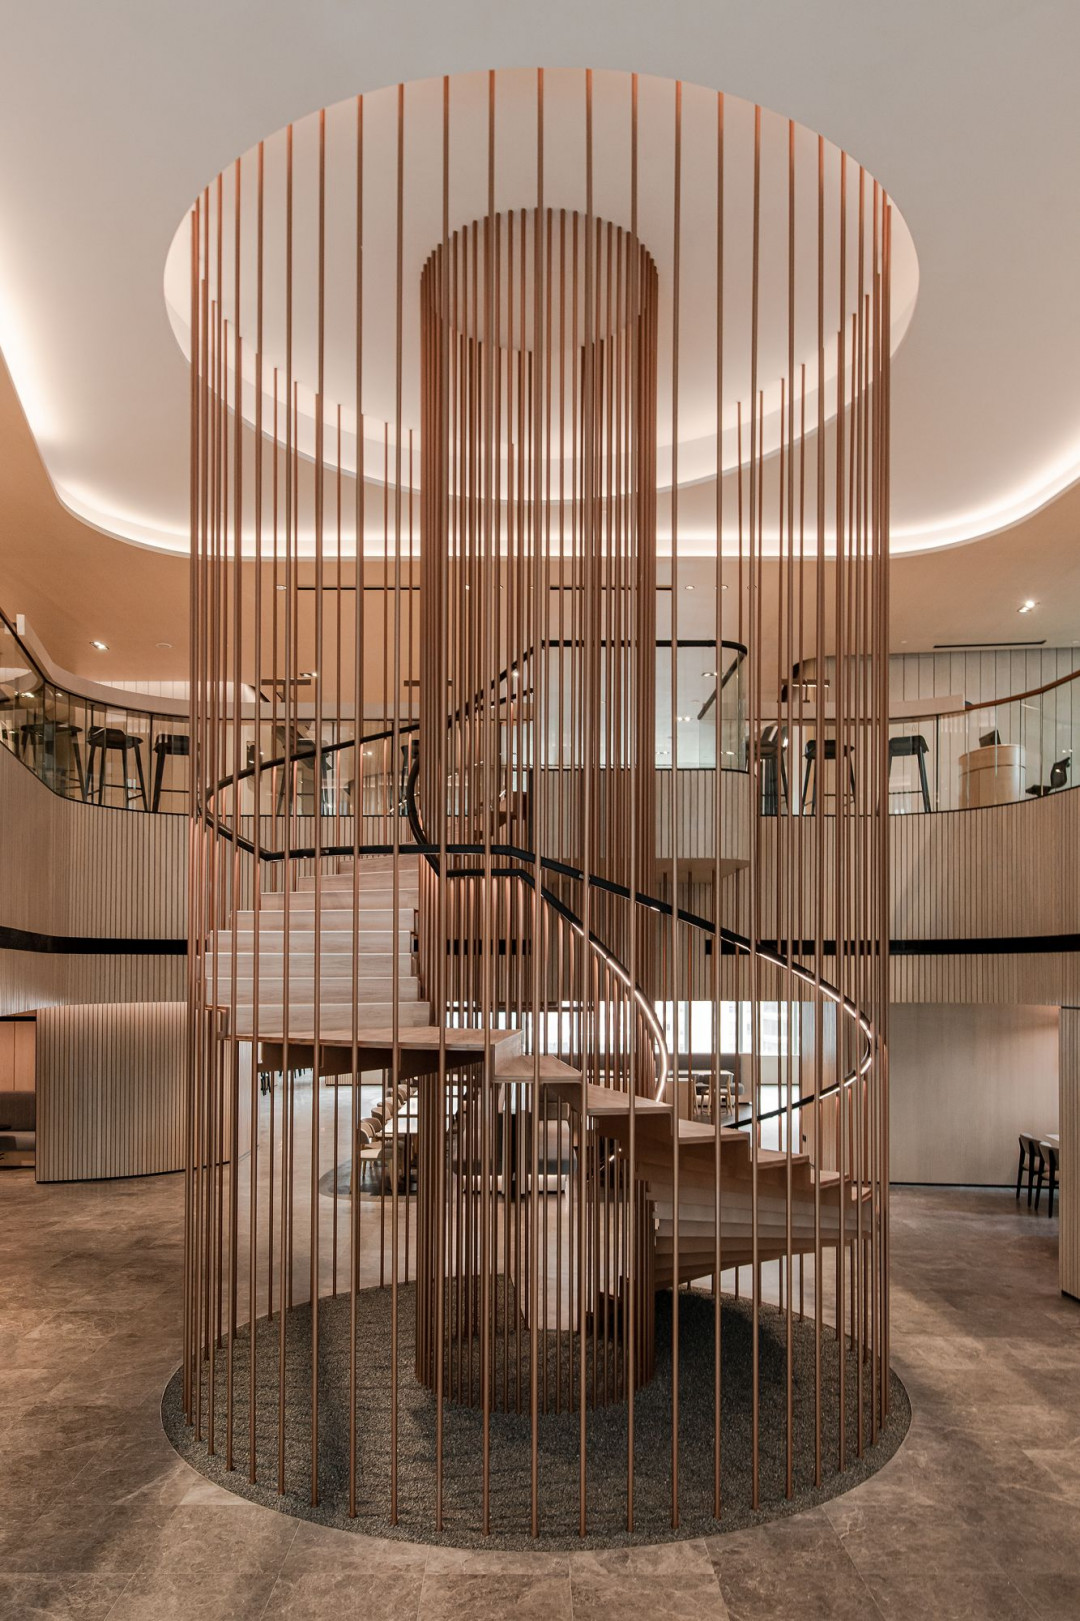 YTL Headquarters by Ministry of Design Presents Elegance from its Beautifully Crafted Materiality